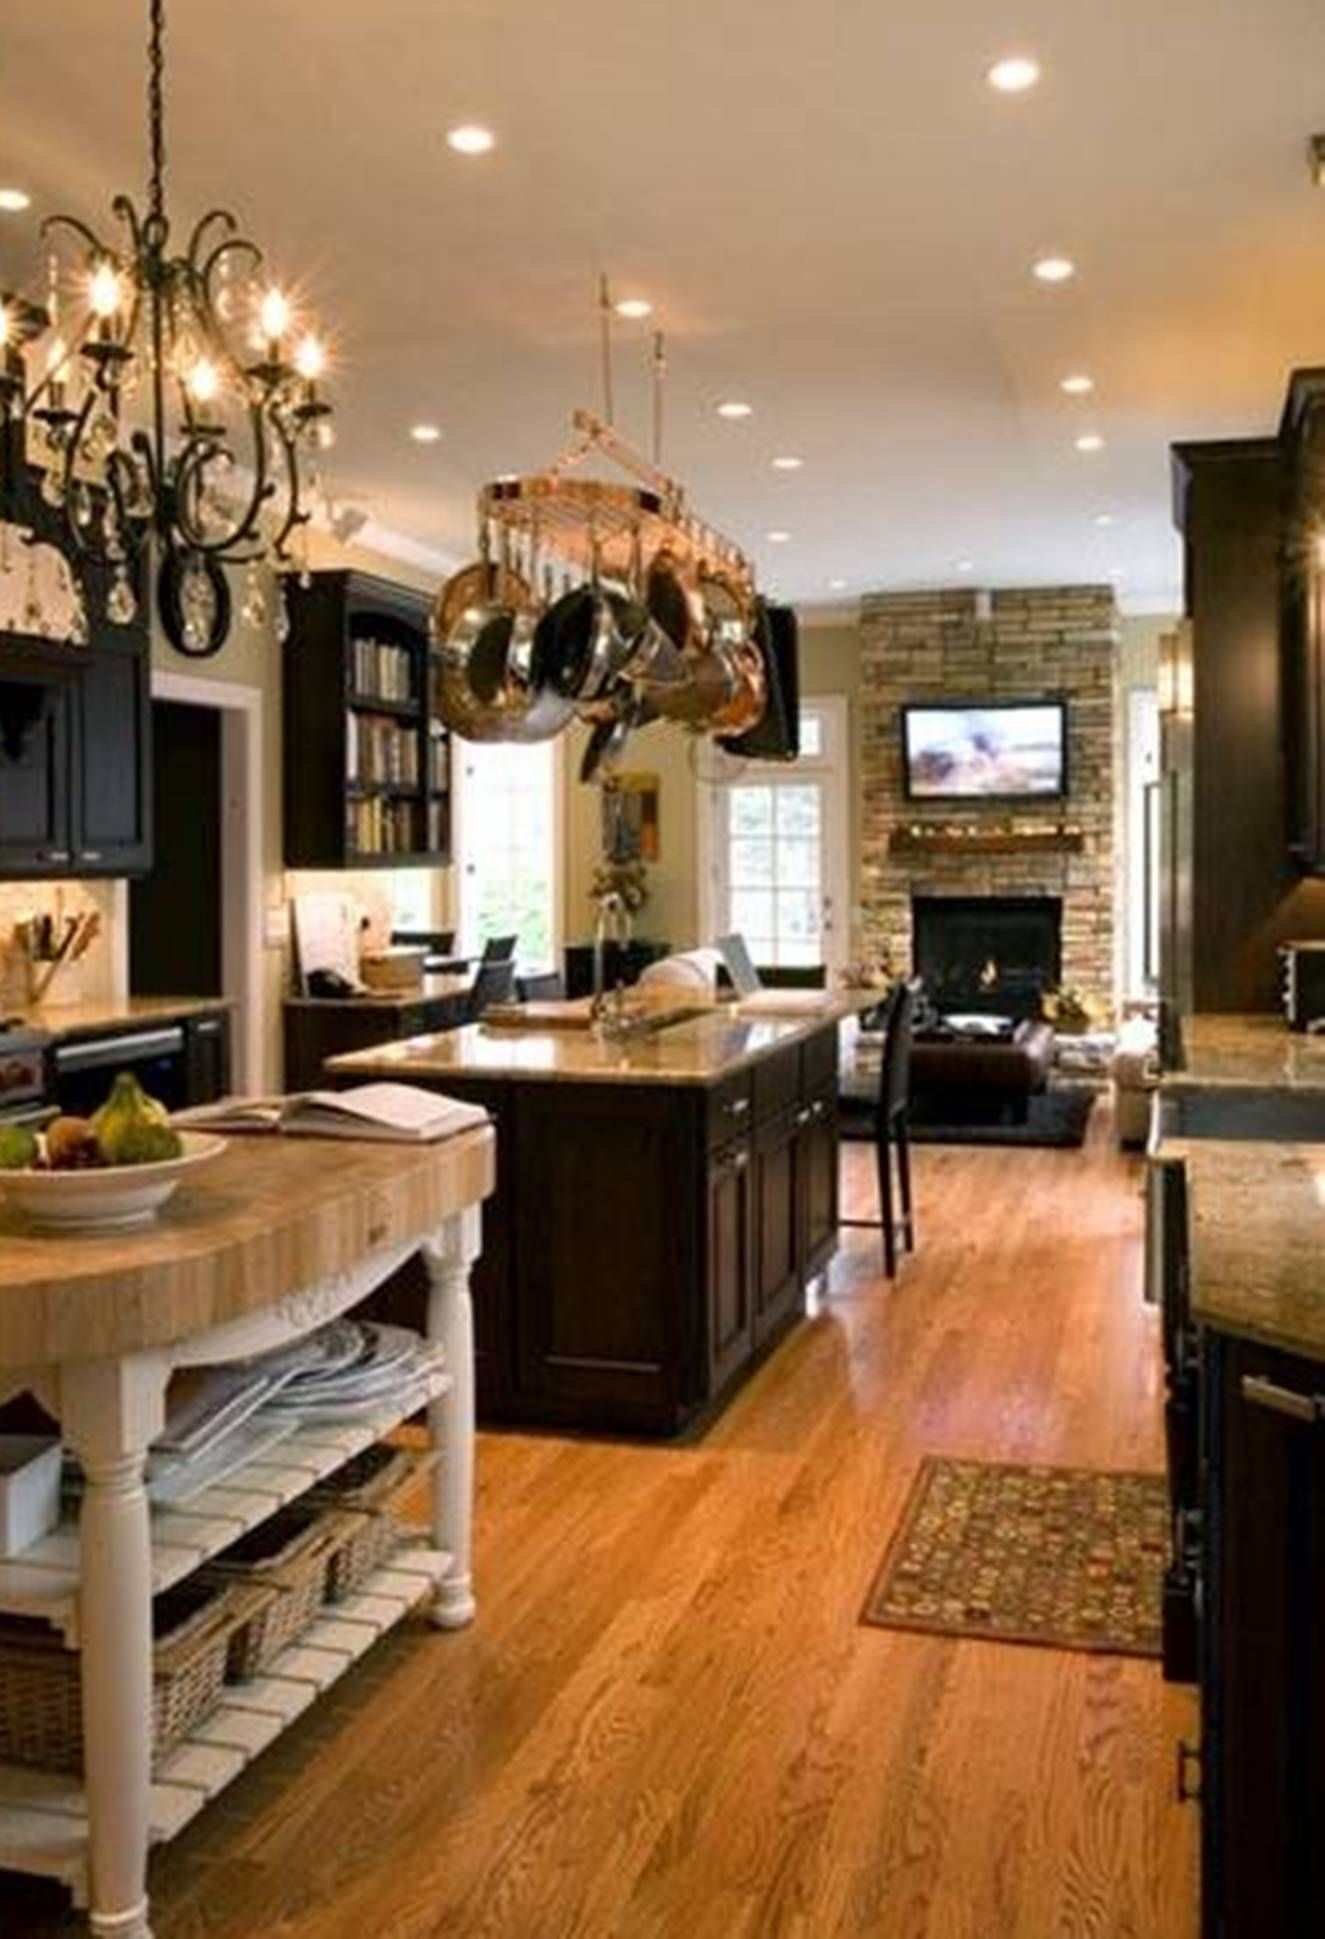 kitchen design with double island, seating area and open kitchen